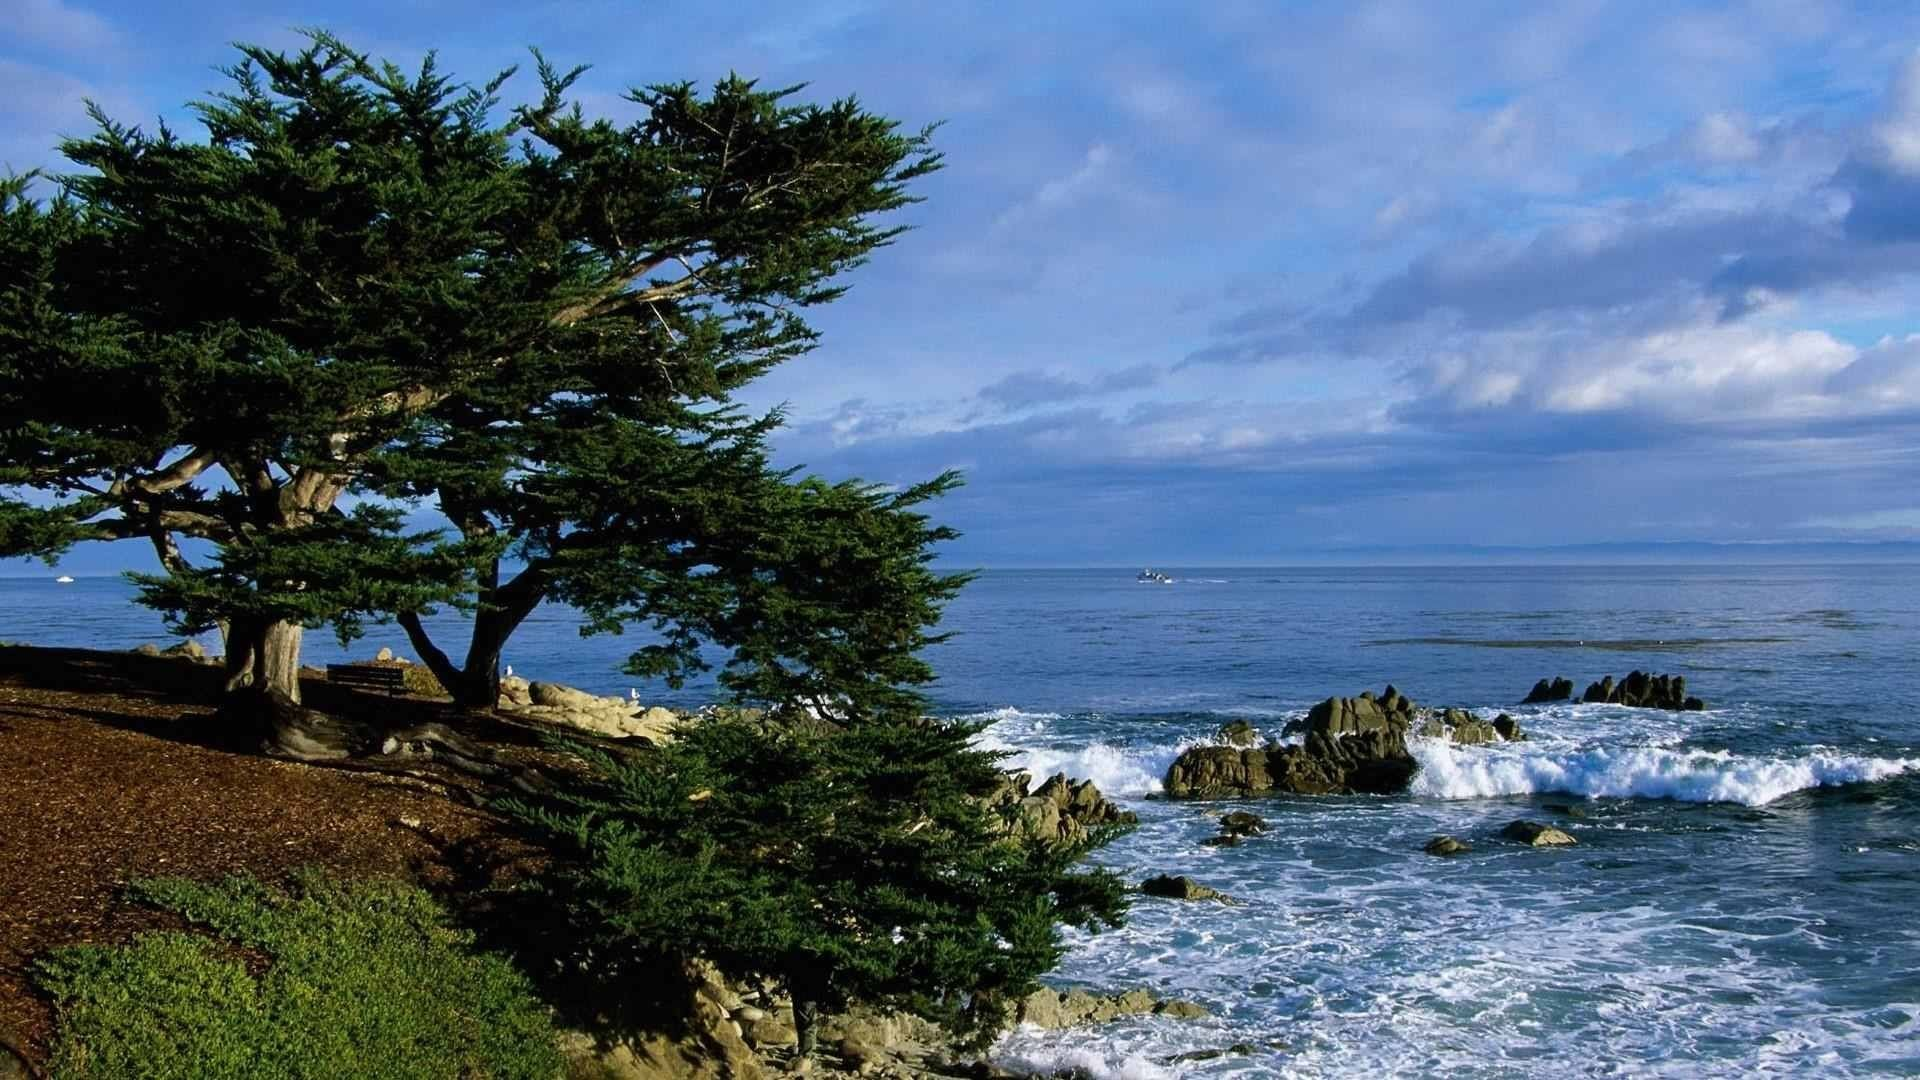 1920x1080 Title. Monterey Bay, California